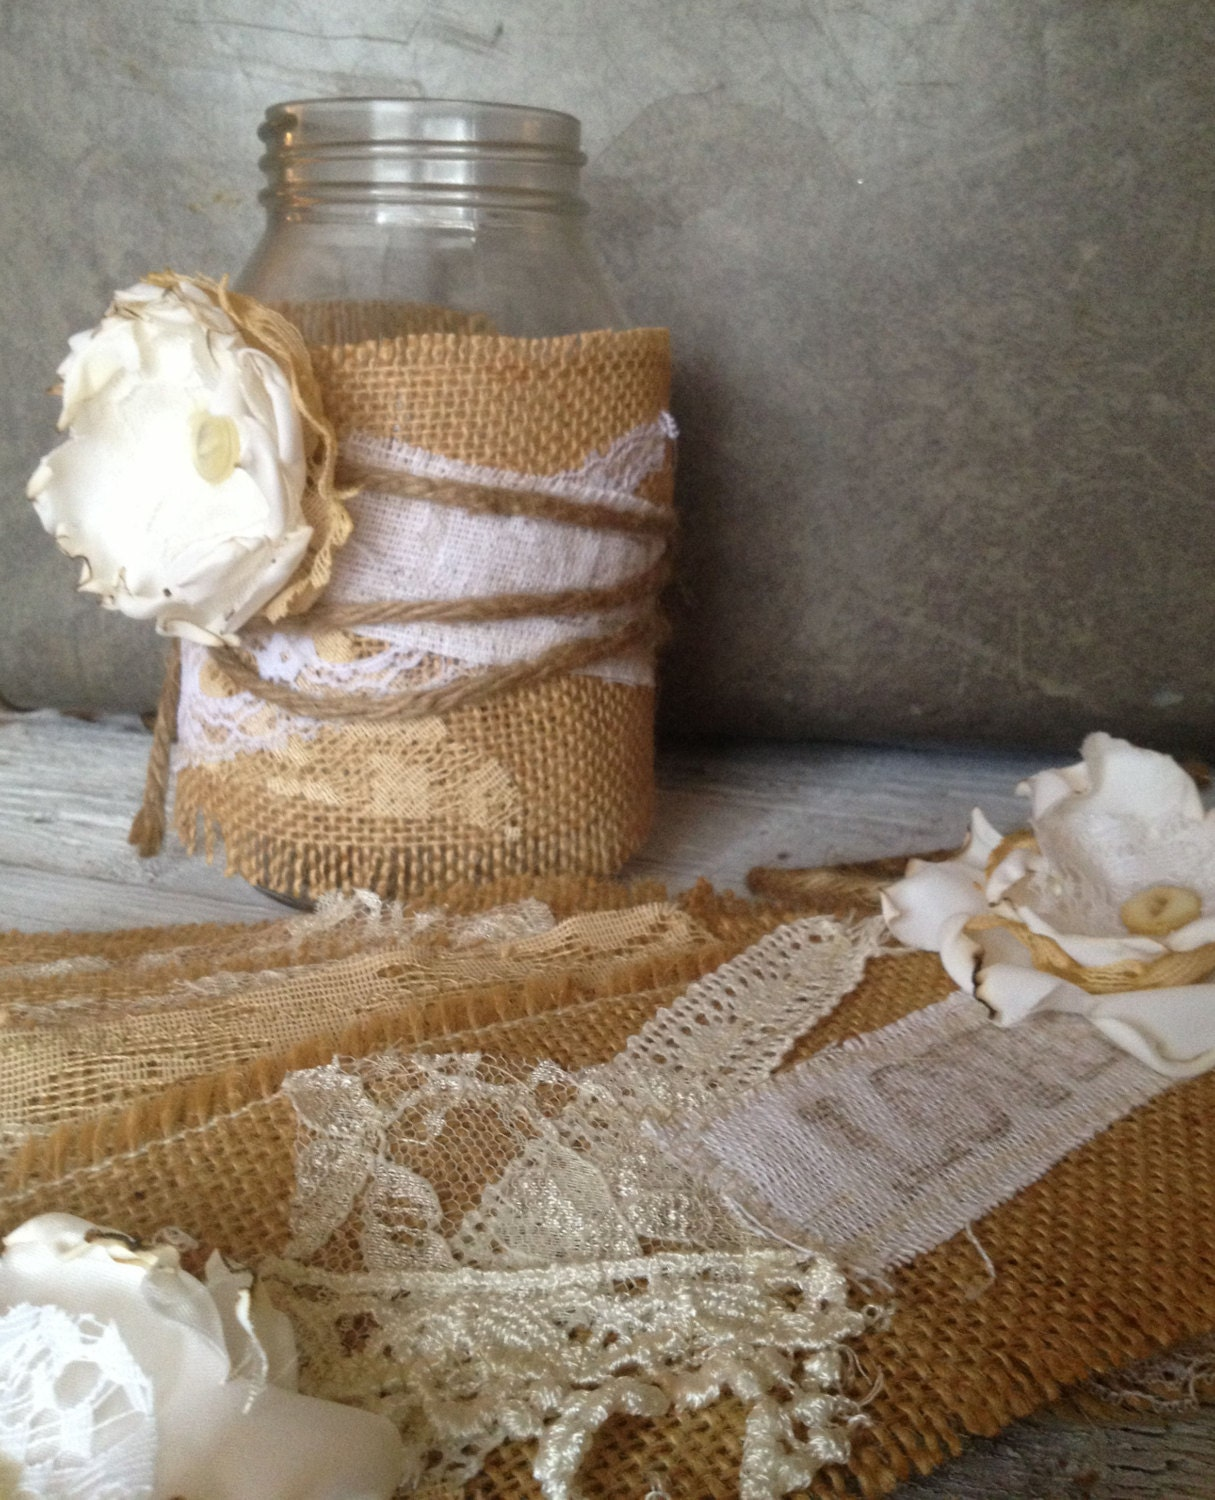 Mason Jar Ideas For Weddings: Rustic Wedding Decor For 20 Jars Rustic Centerpiece Burlap